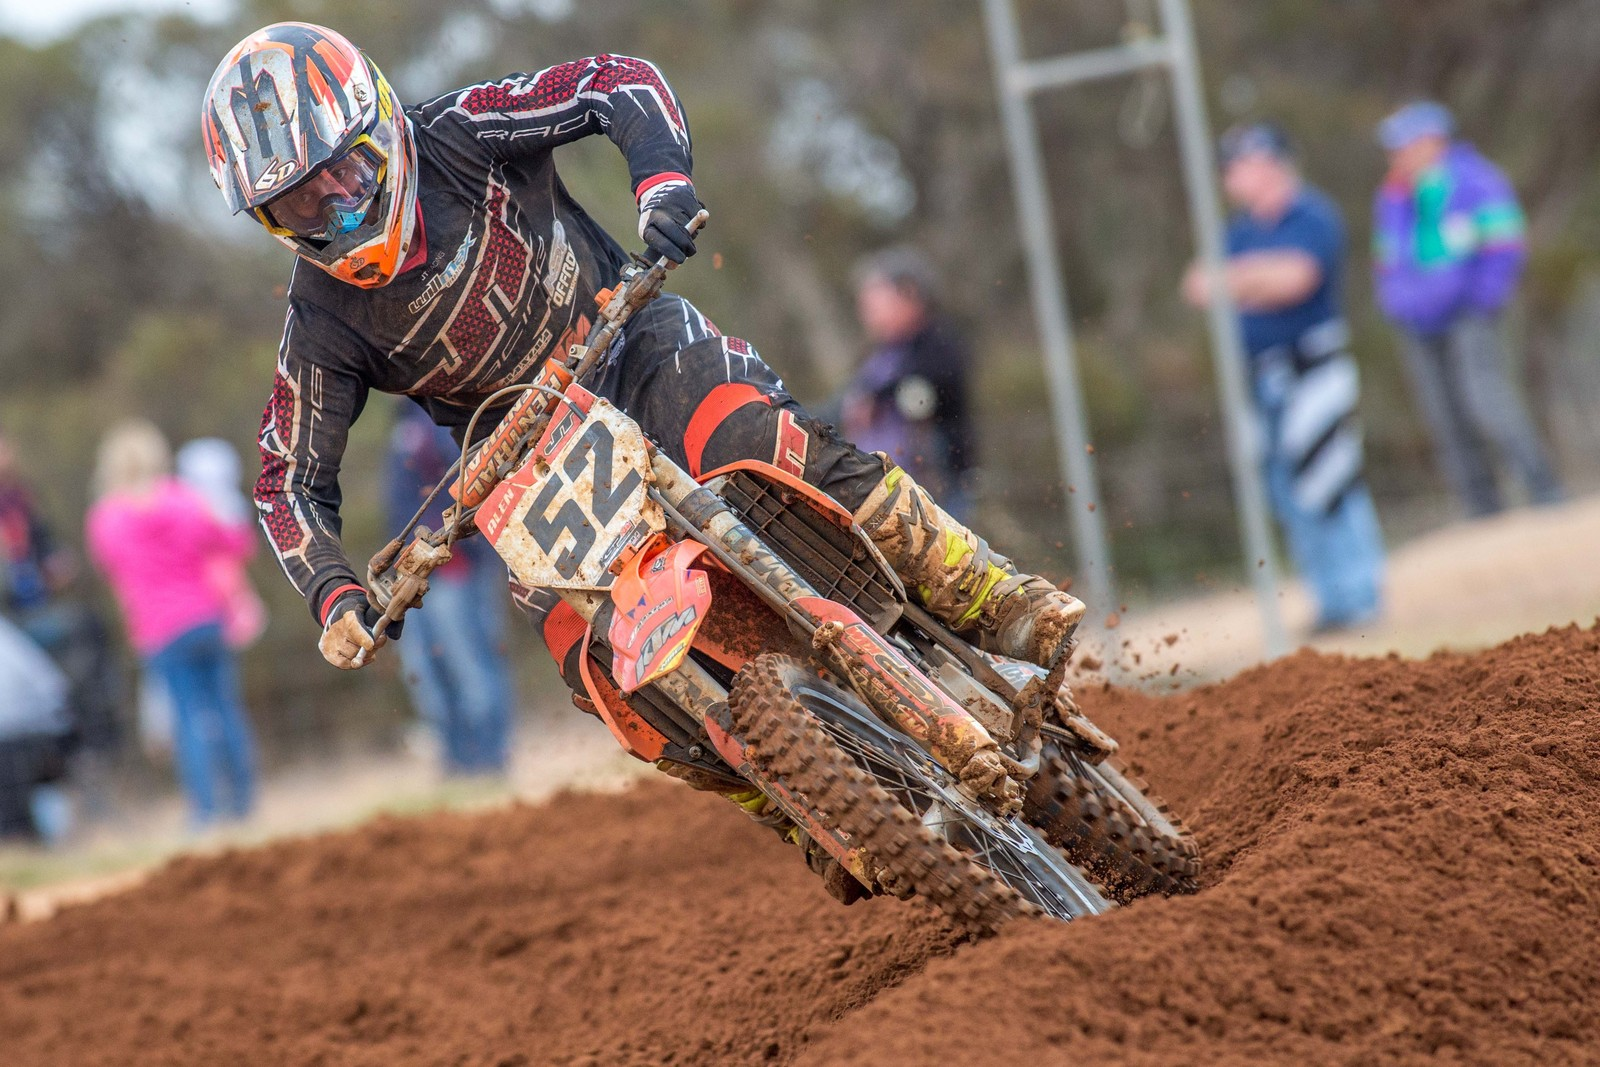 James Alen - Australian Motul Mx Championships: Round 4, Murray Bridge - Motocross Pictures - Vital MX